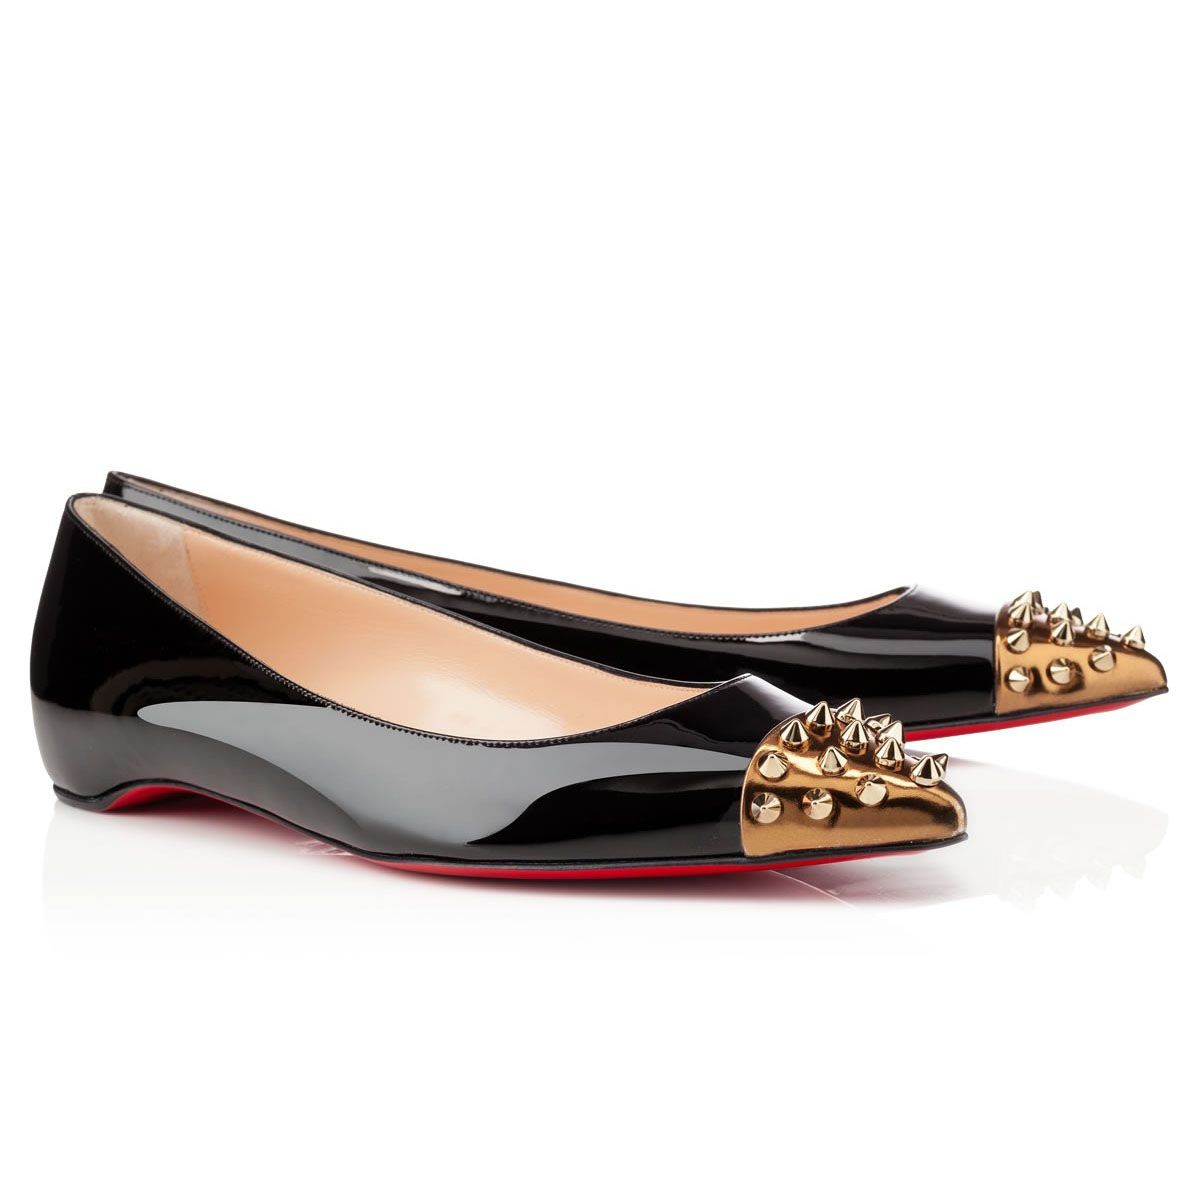 christian louboutin flat shoes